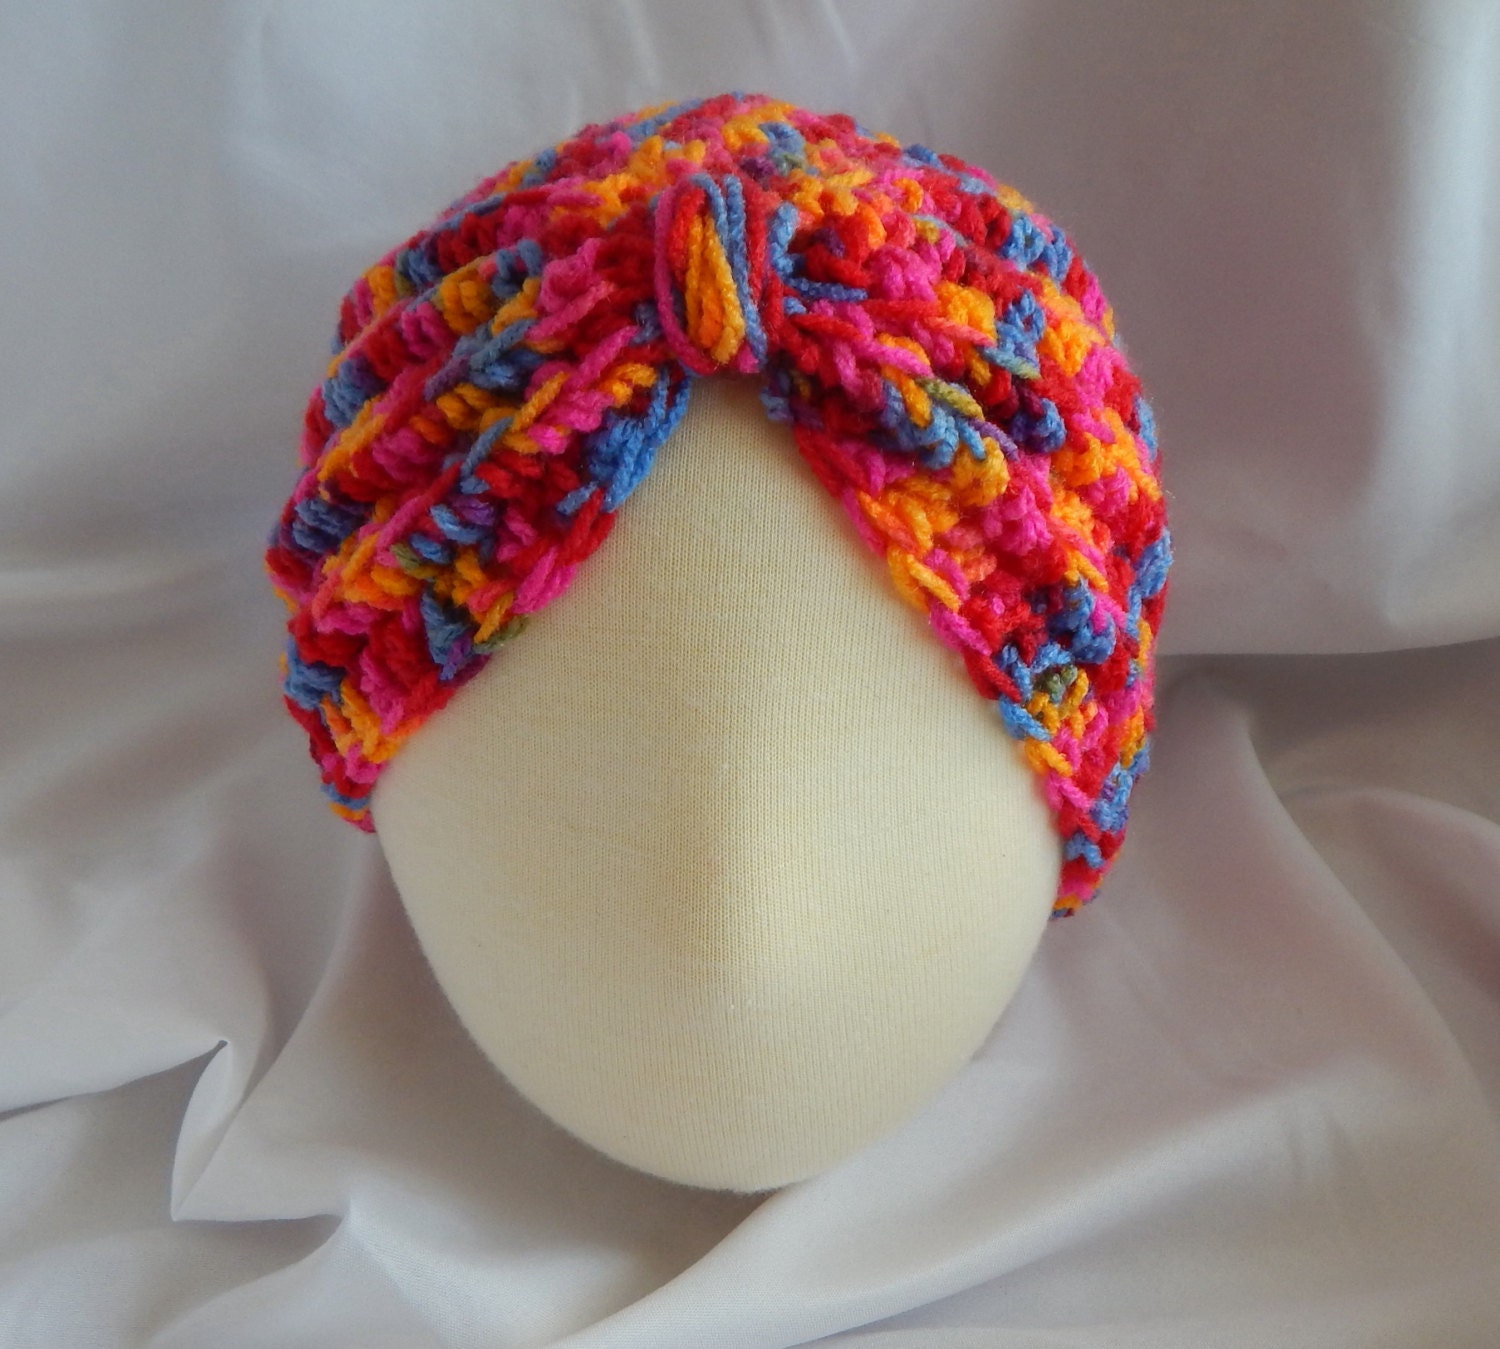 Crochet baby turban hat pattern manet for baby turban hat crochet in bright pink blue red 3 to 6 baditri Images